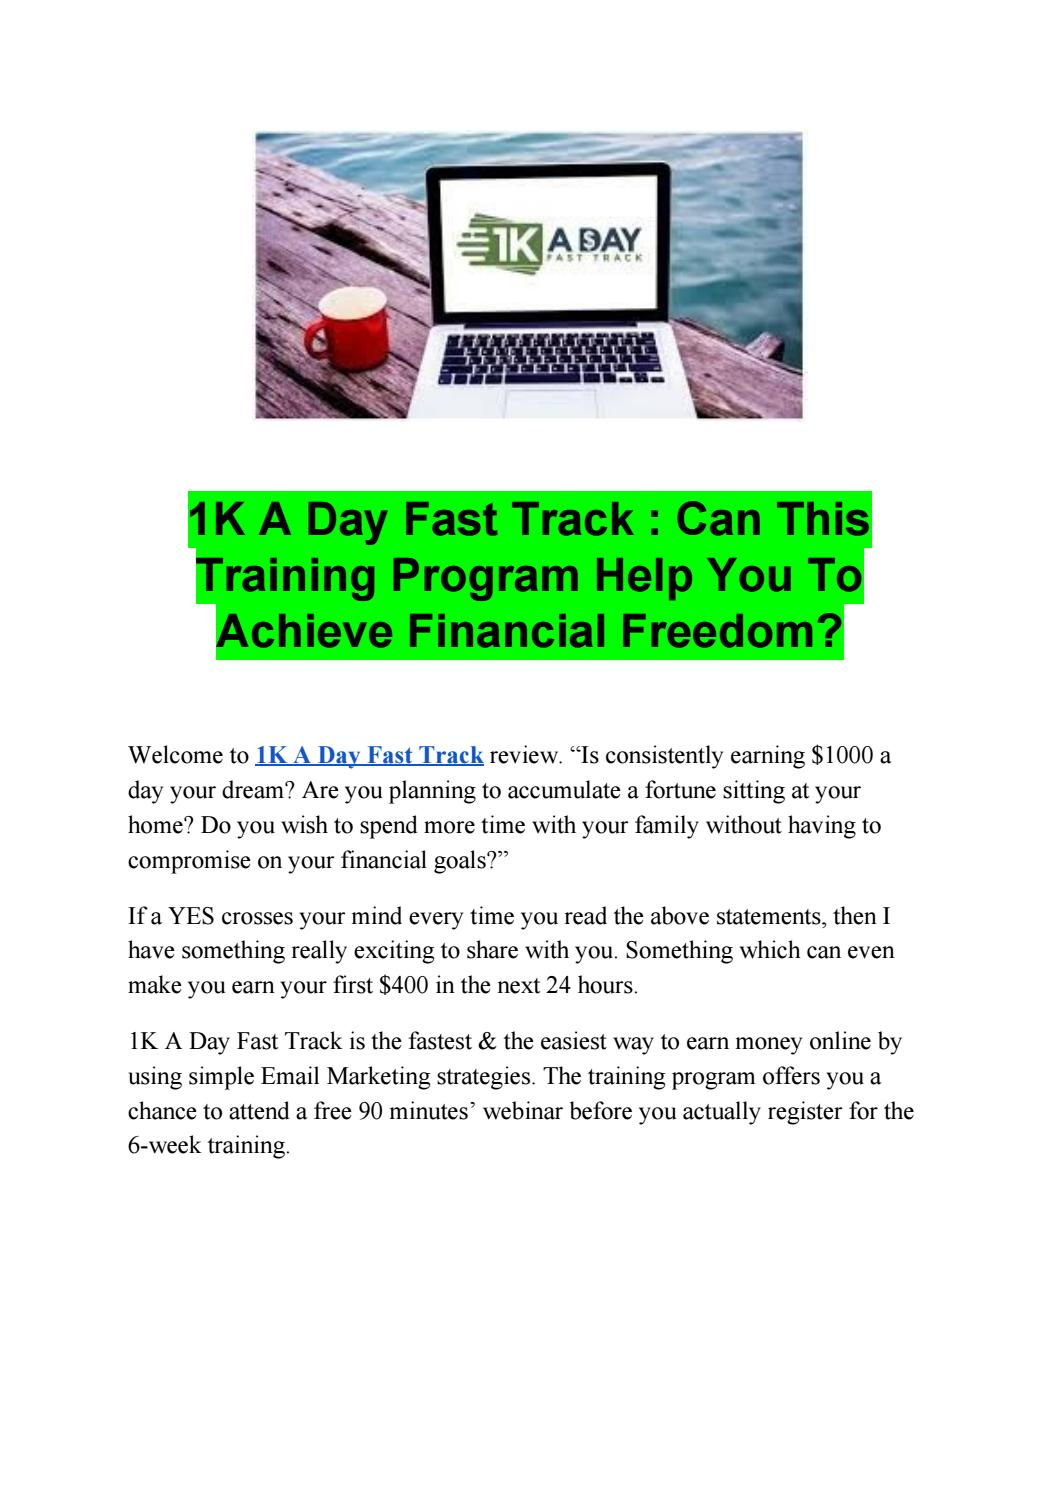 Buy 1k A Day Fast Track Training Program Price Rate